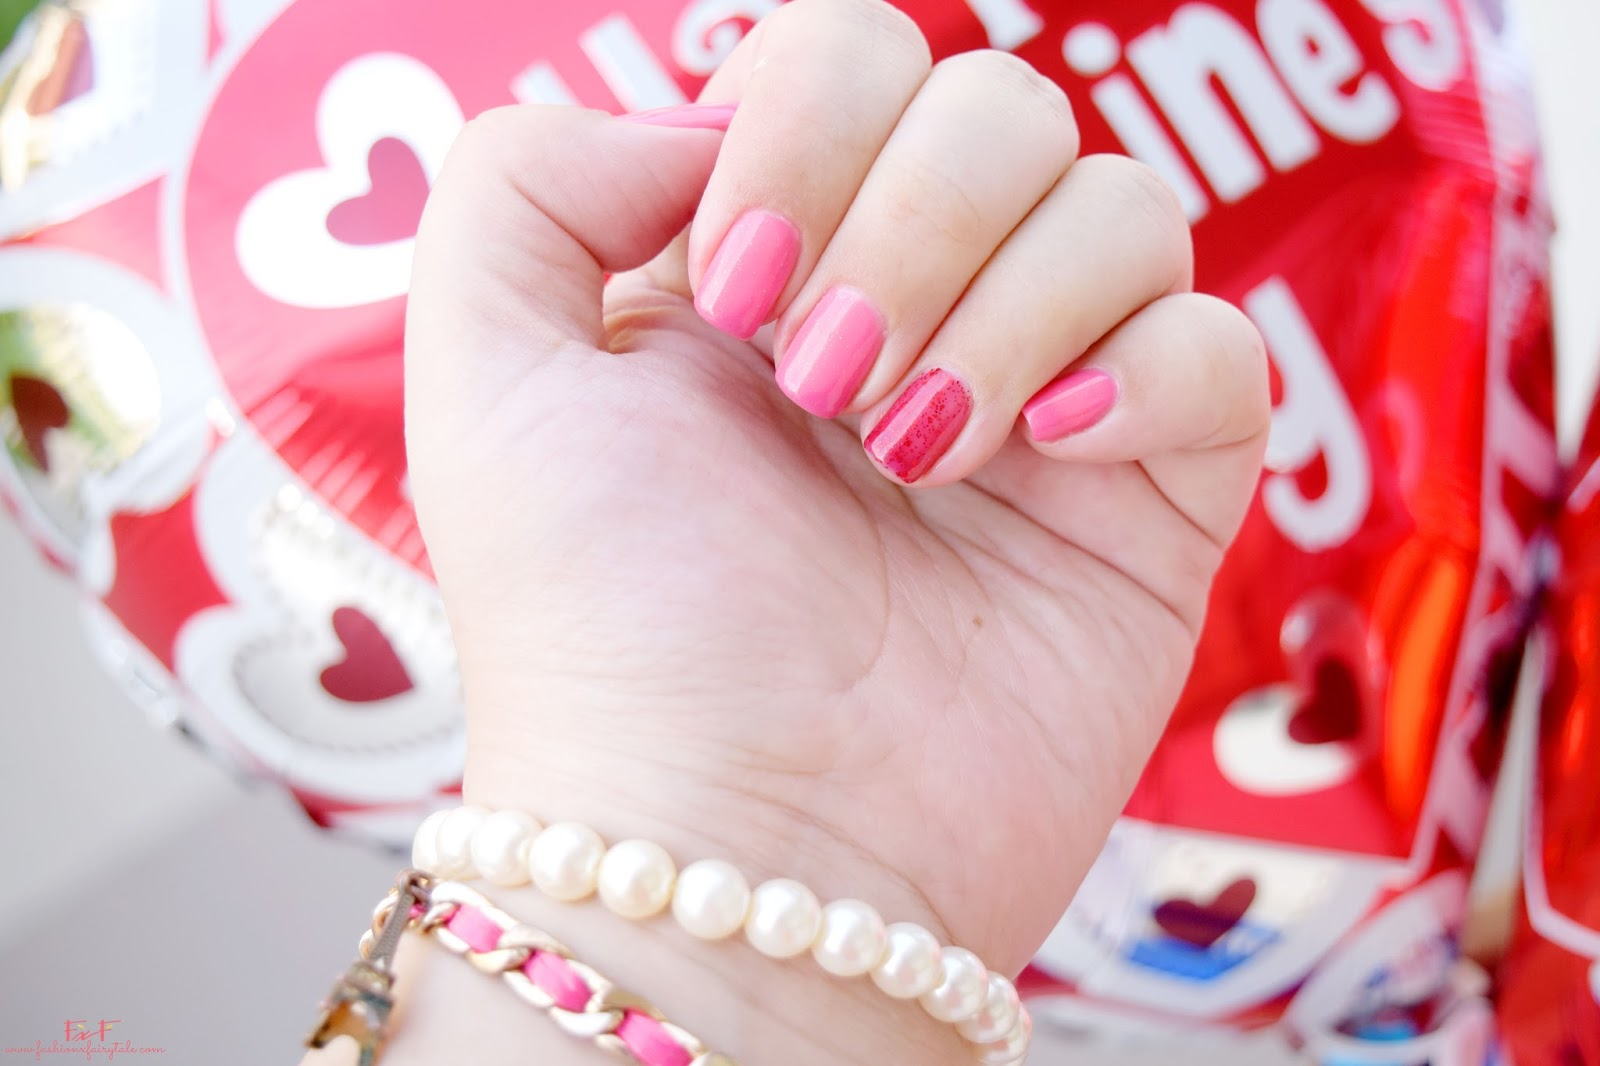 Pink & Red Valentine's Day Manicure | On My Nails